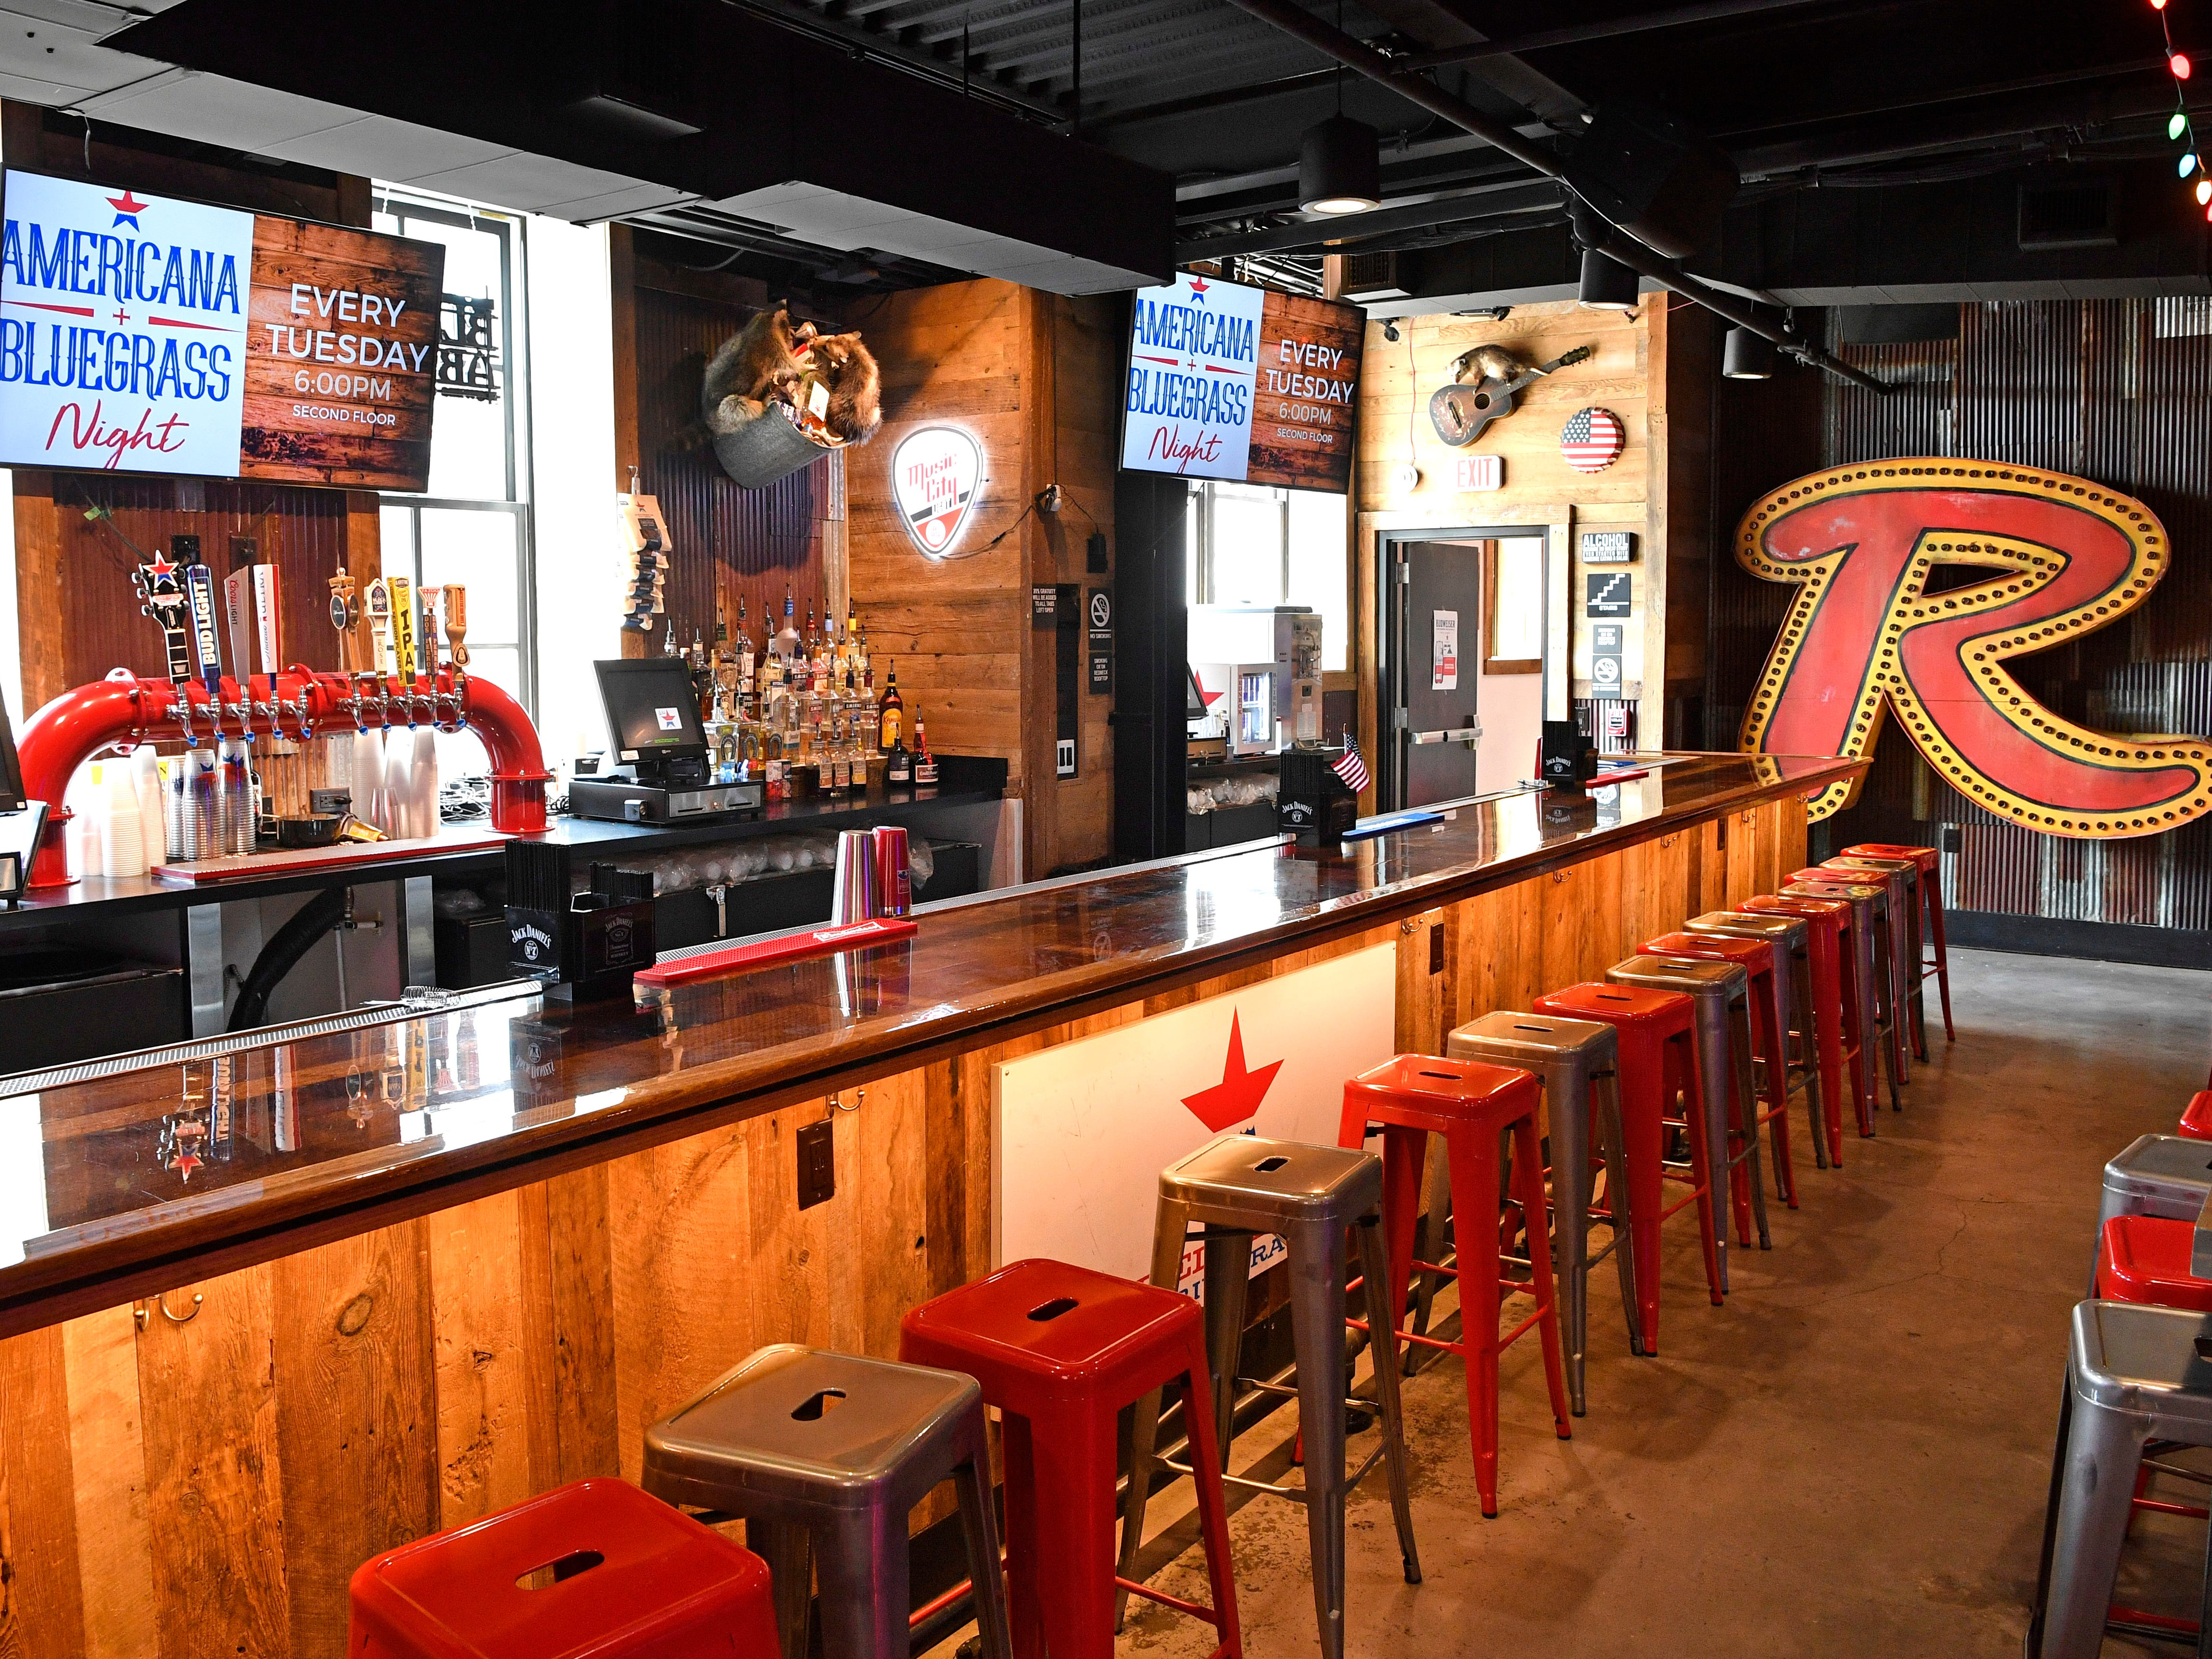 The bar on the second floor of John Rich's Redneck Riviera. The new bar is located at 208 BroadwayWednesday July 11, 2018, in Nashville, Tenn.